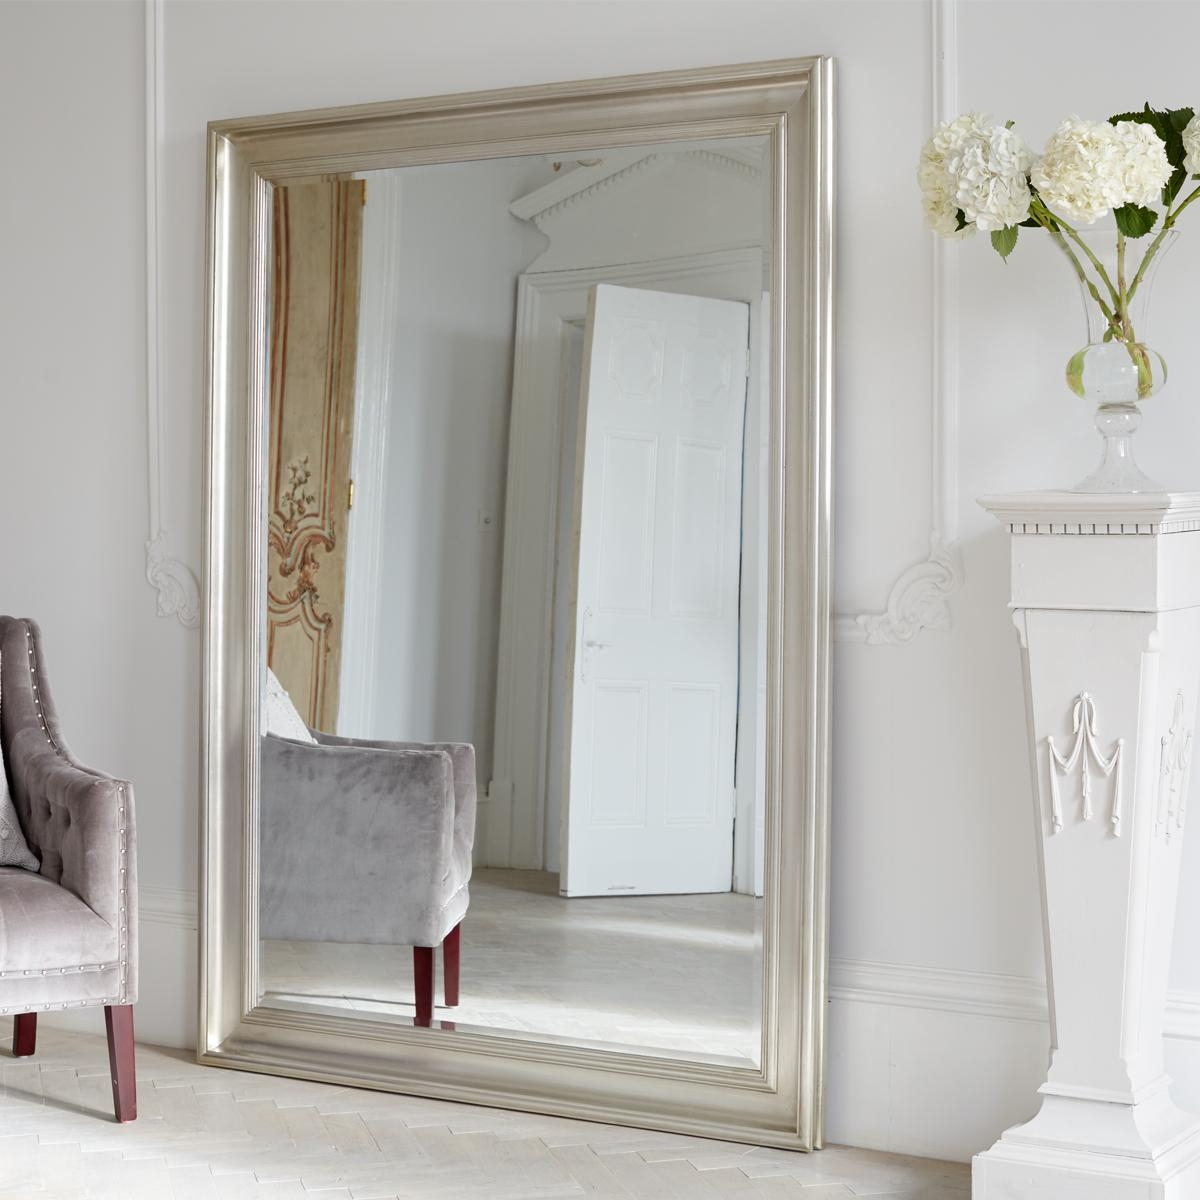 Top 20 cheap stand up mirrors mirror ideas for Affordable large mirrors